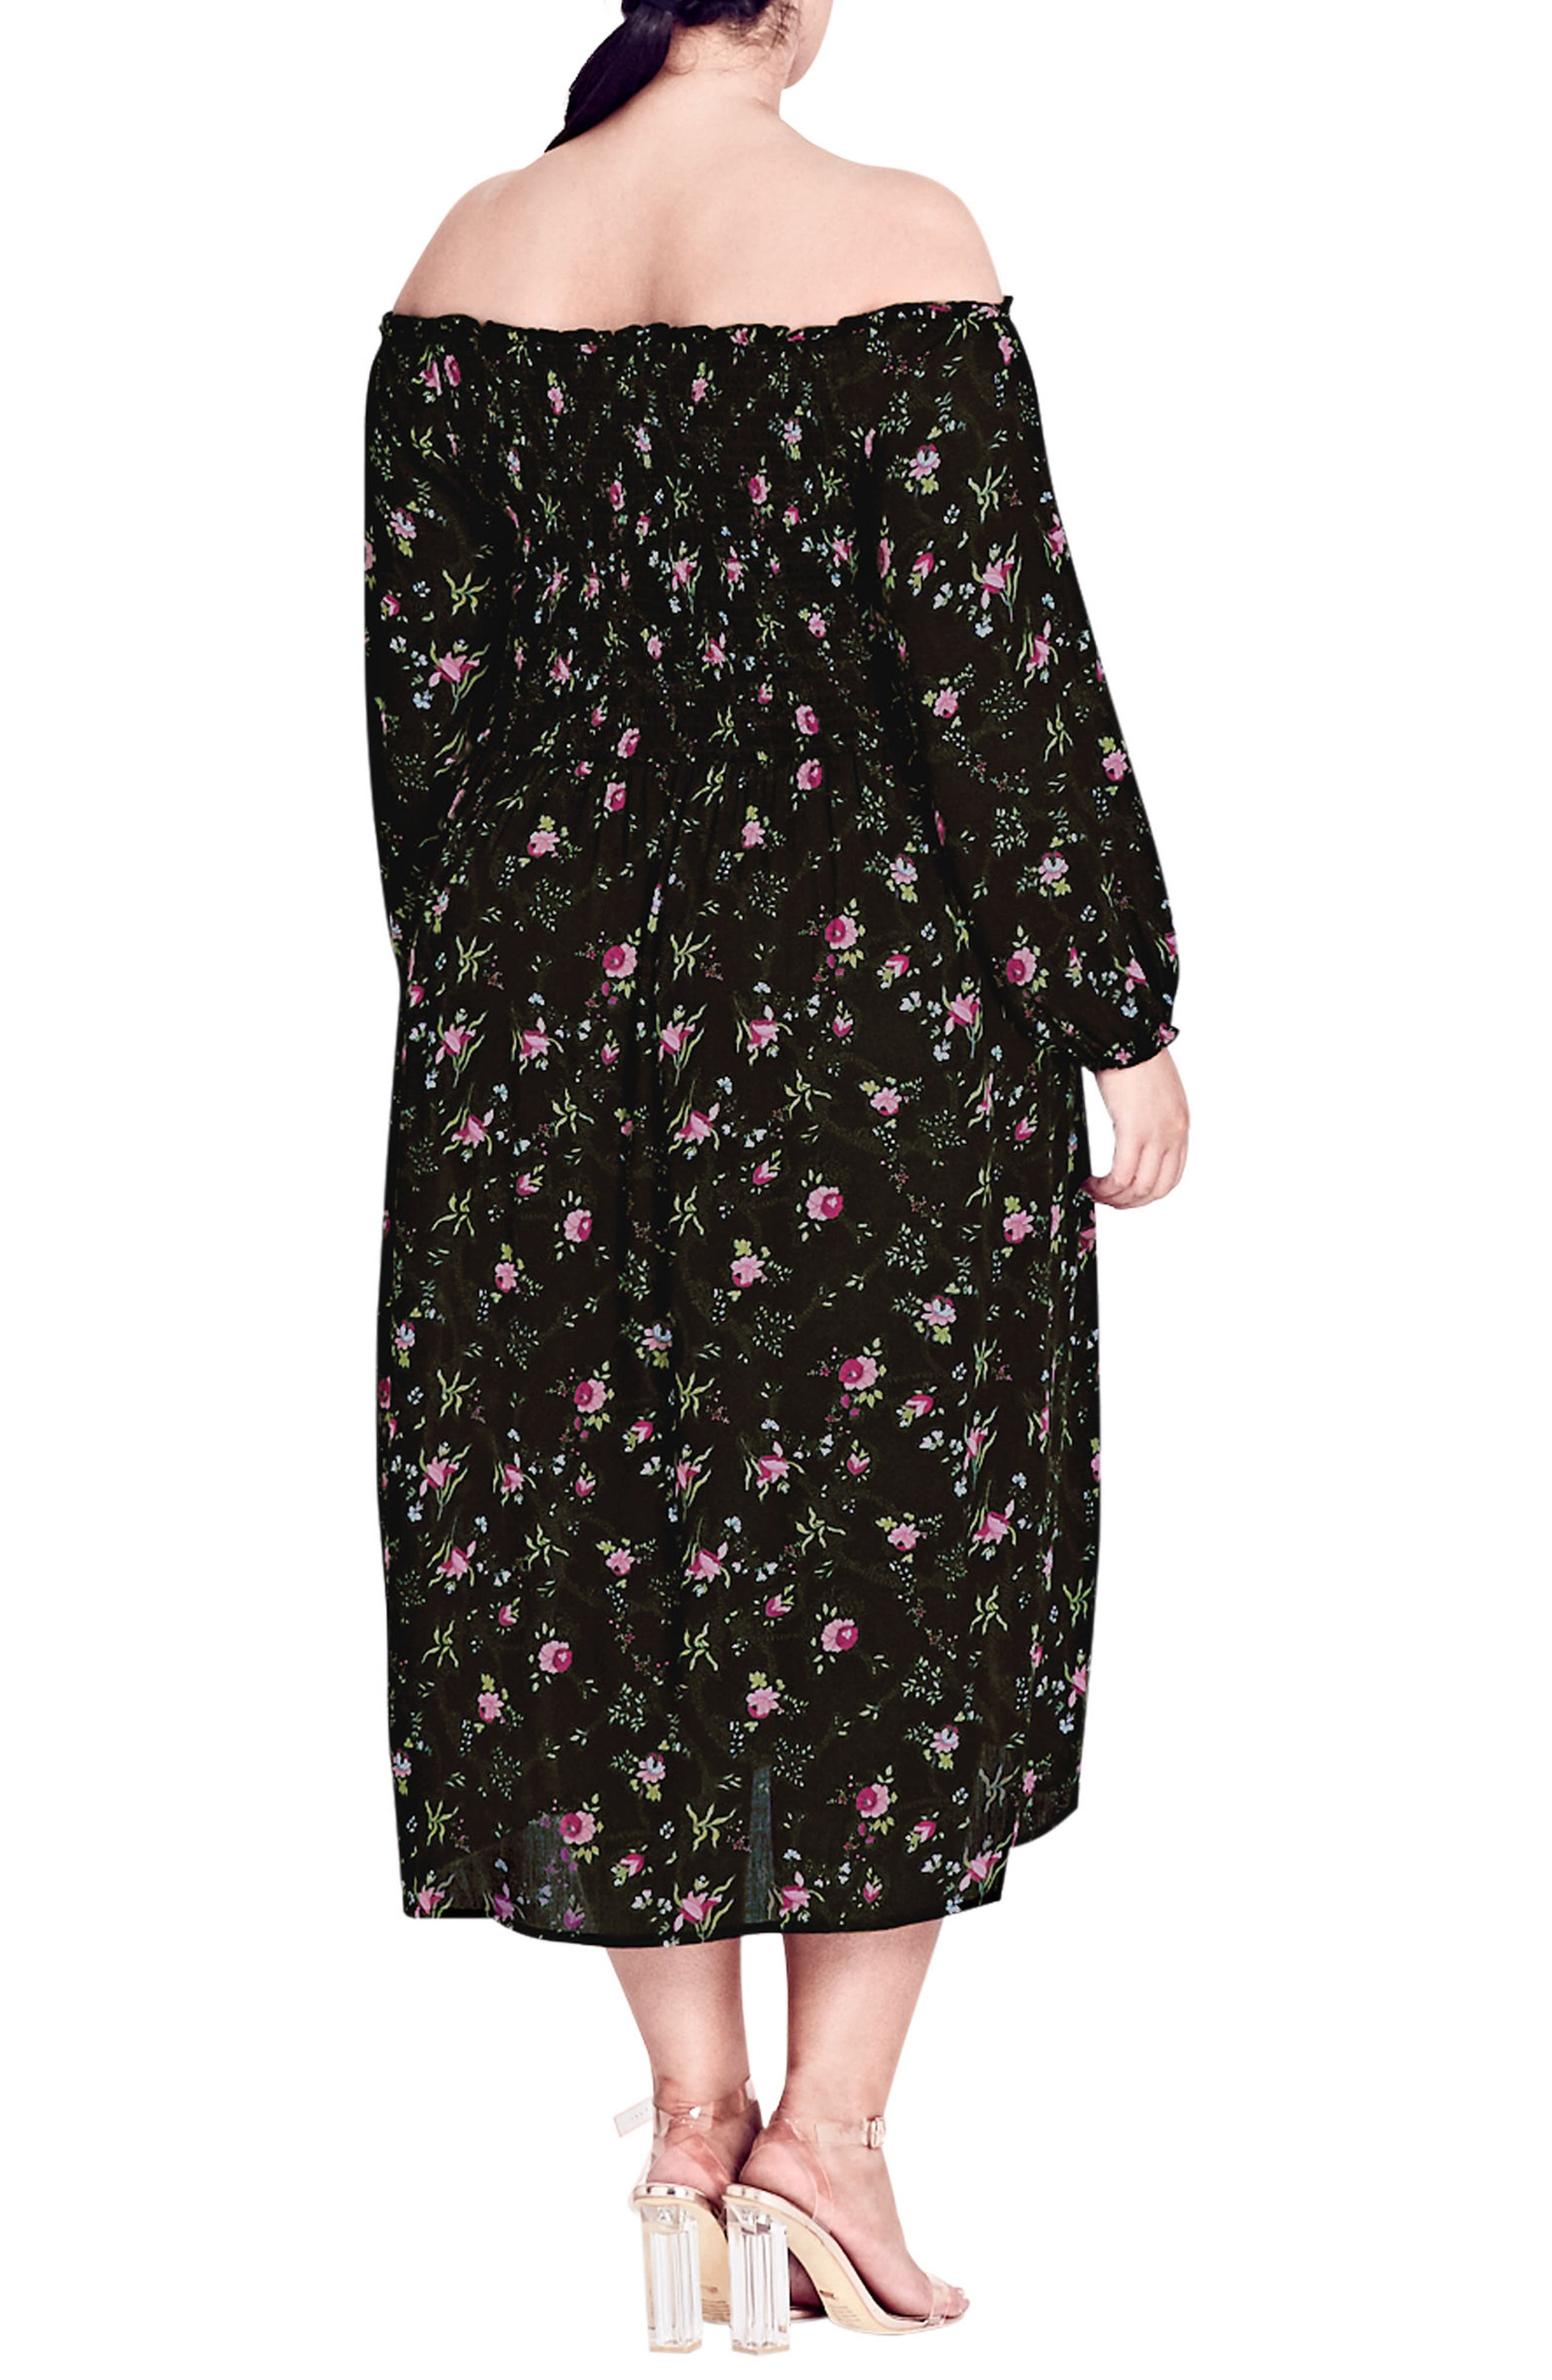 CITY CHIC,                             Garden Floral Off the Shoulder Dress,                             Alternate thumbnail 2, color,                             001